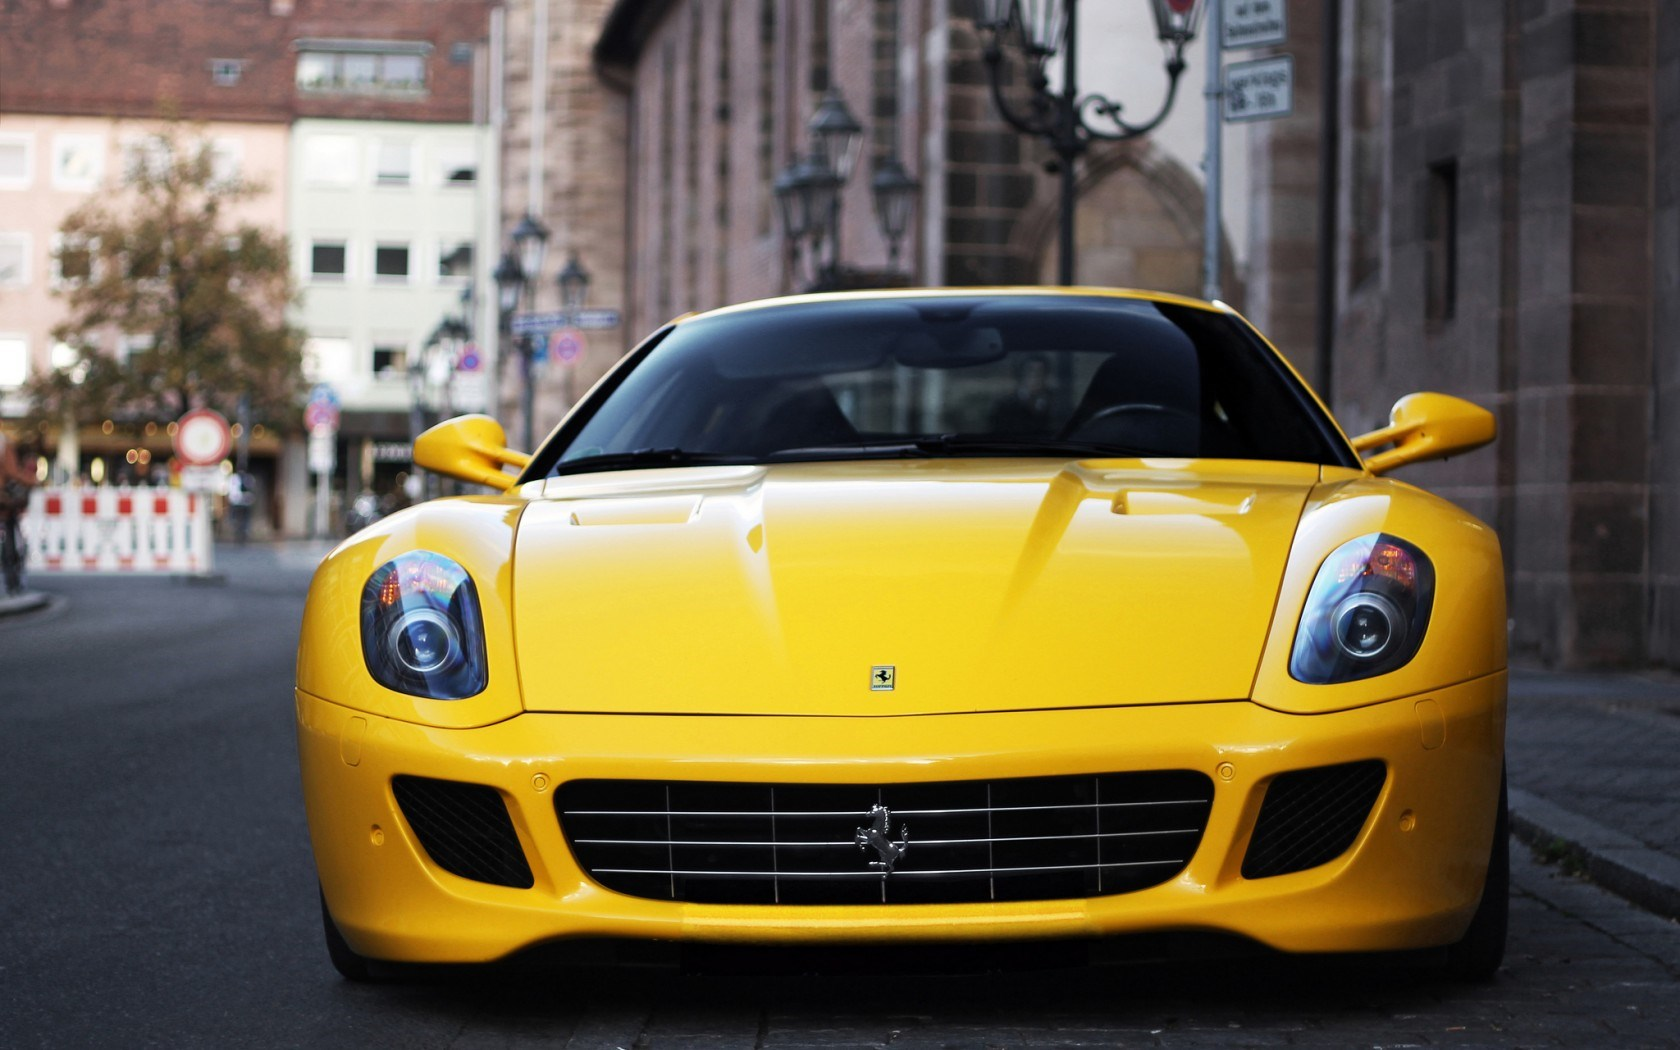 Ferrari 599 Gtb Fiorano Yellow Car